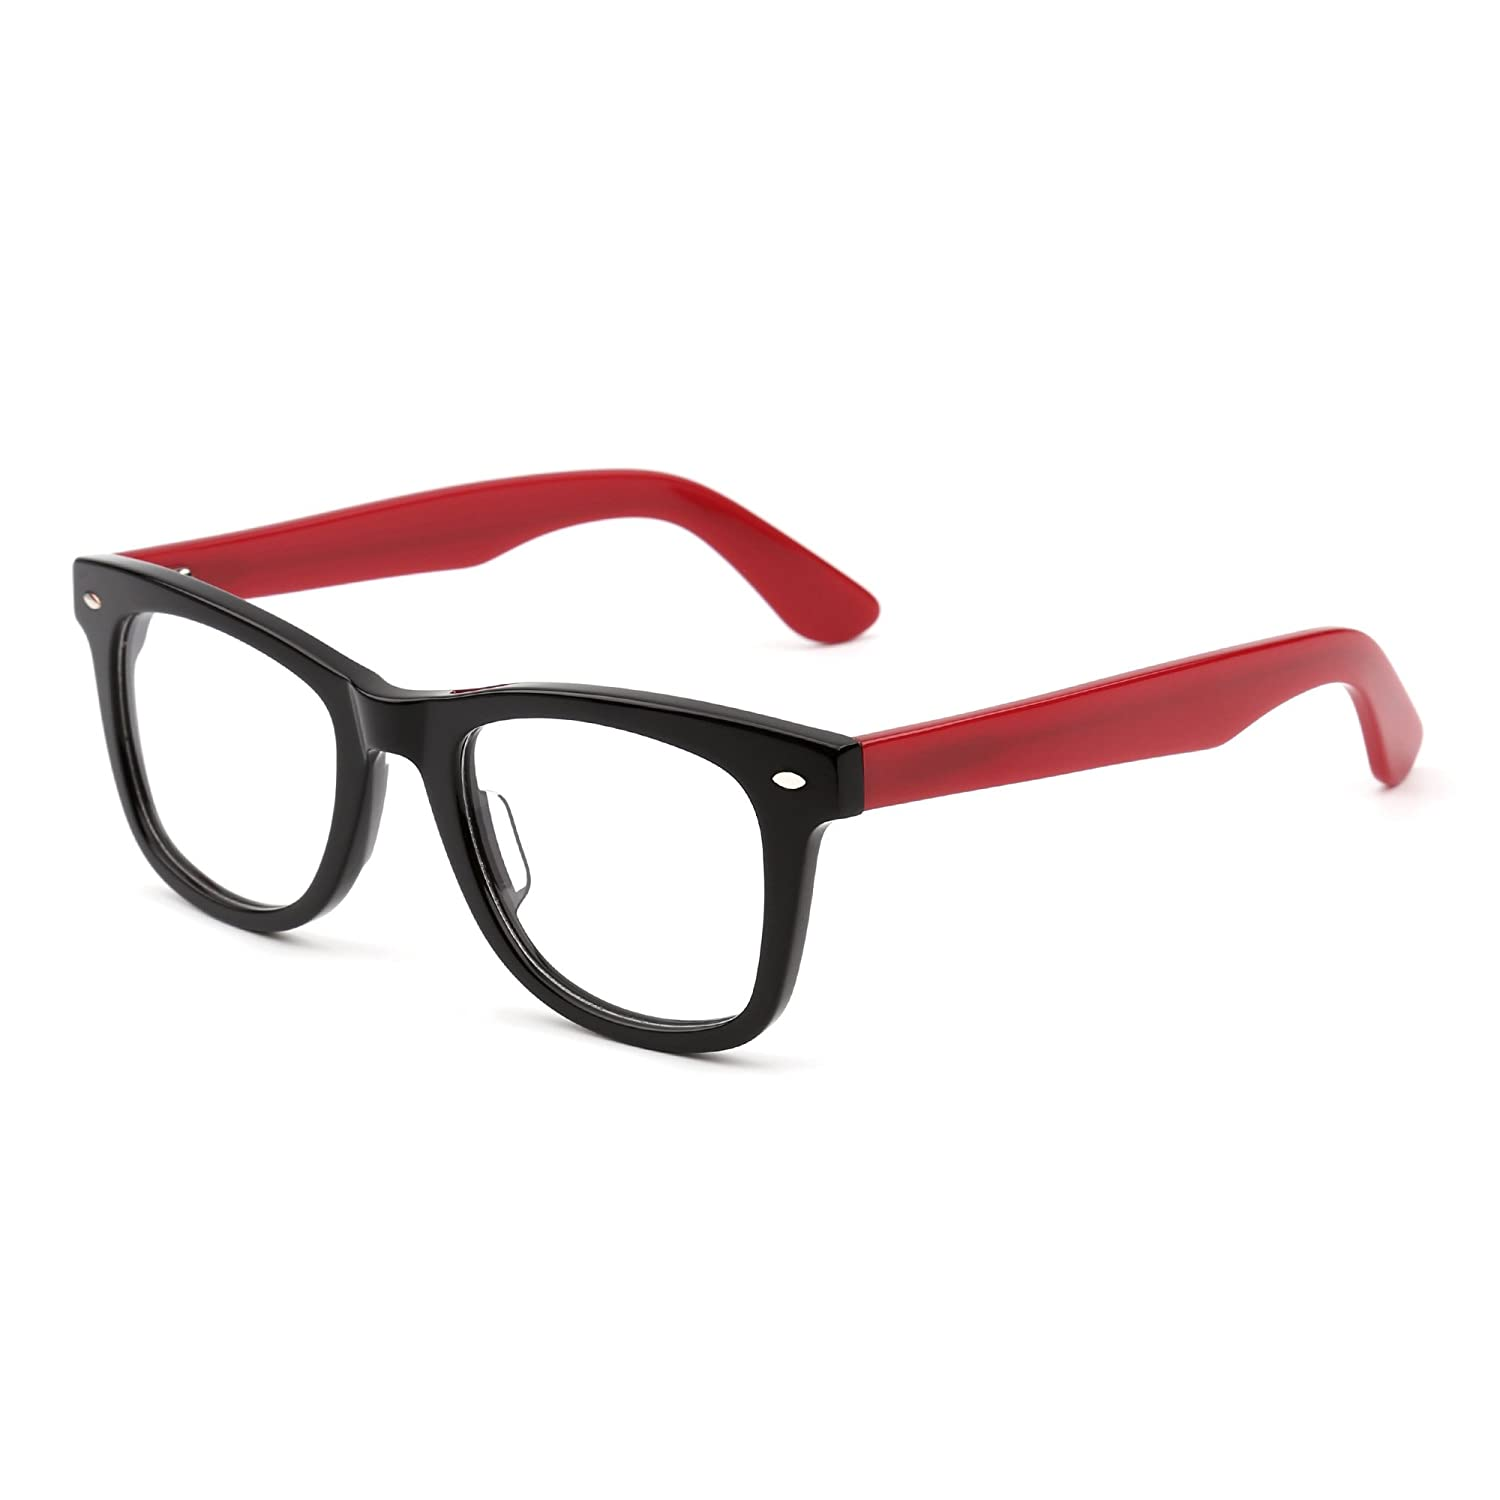 22920fa569b Amazon.com  Classic RX Glasses Frame Spring Hinge Clear Lens Square Eyeglasses  Men Women (Black Red Clear)  Clothing